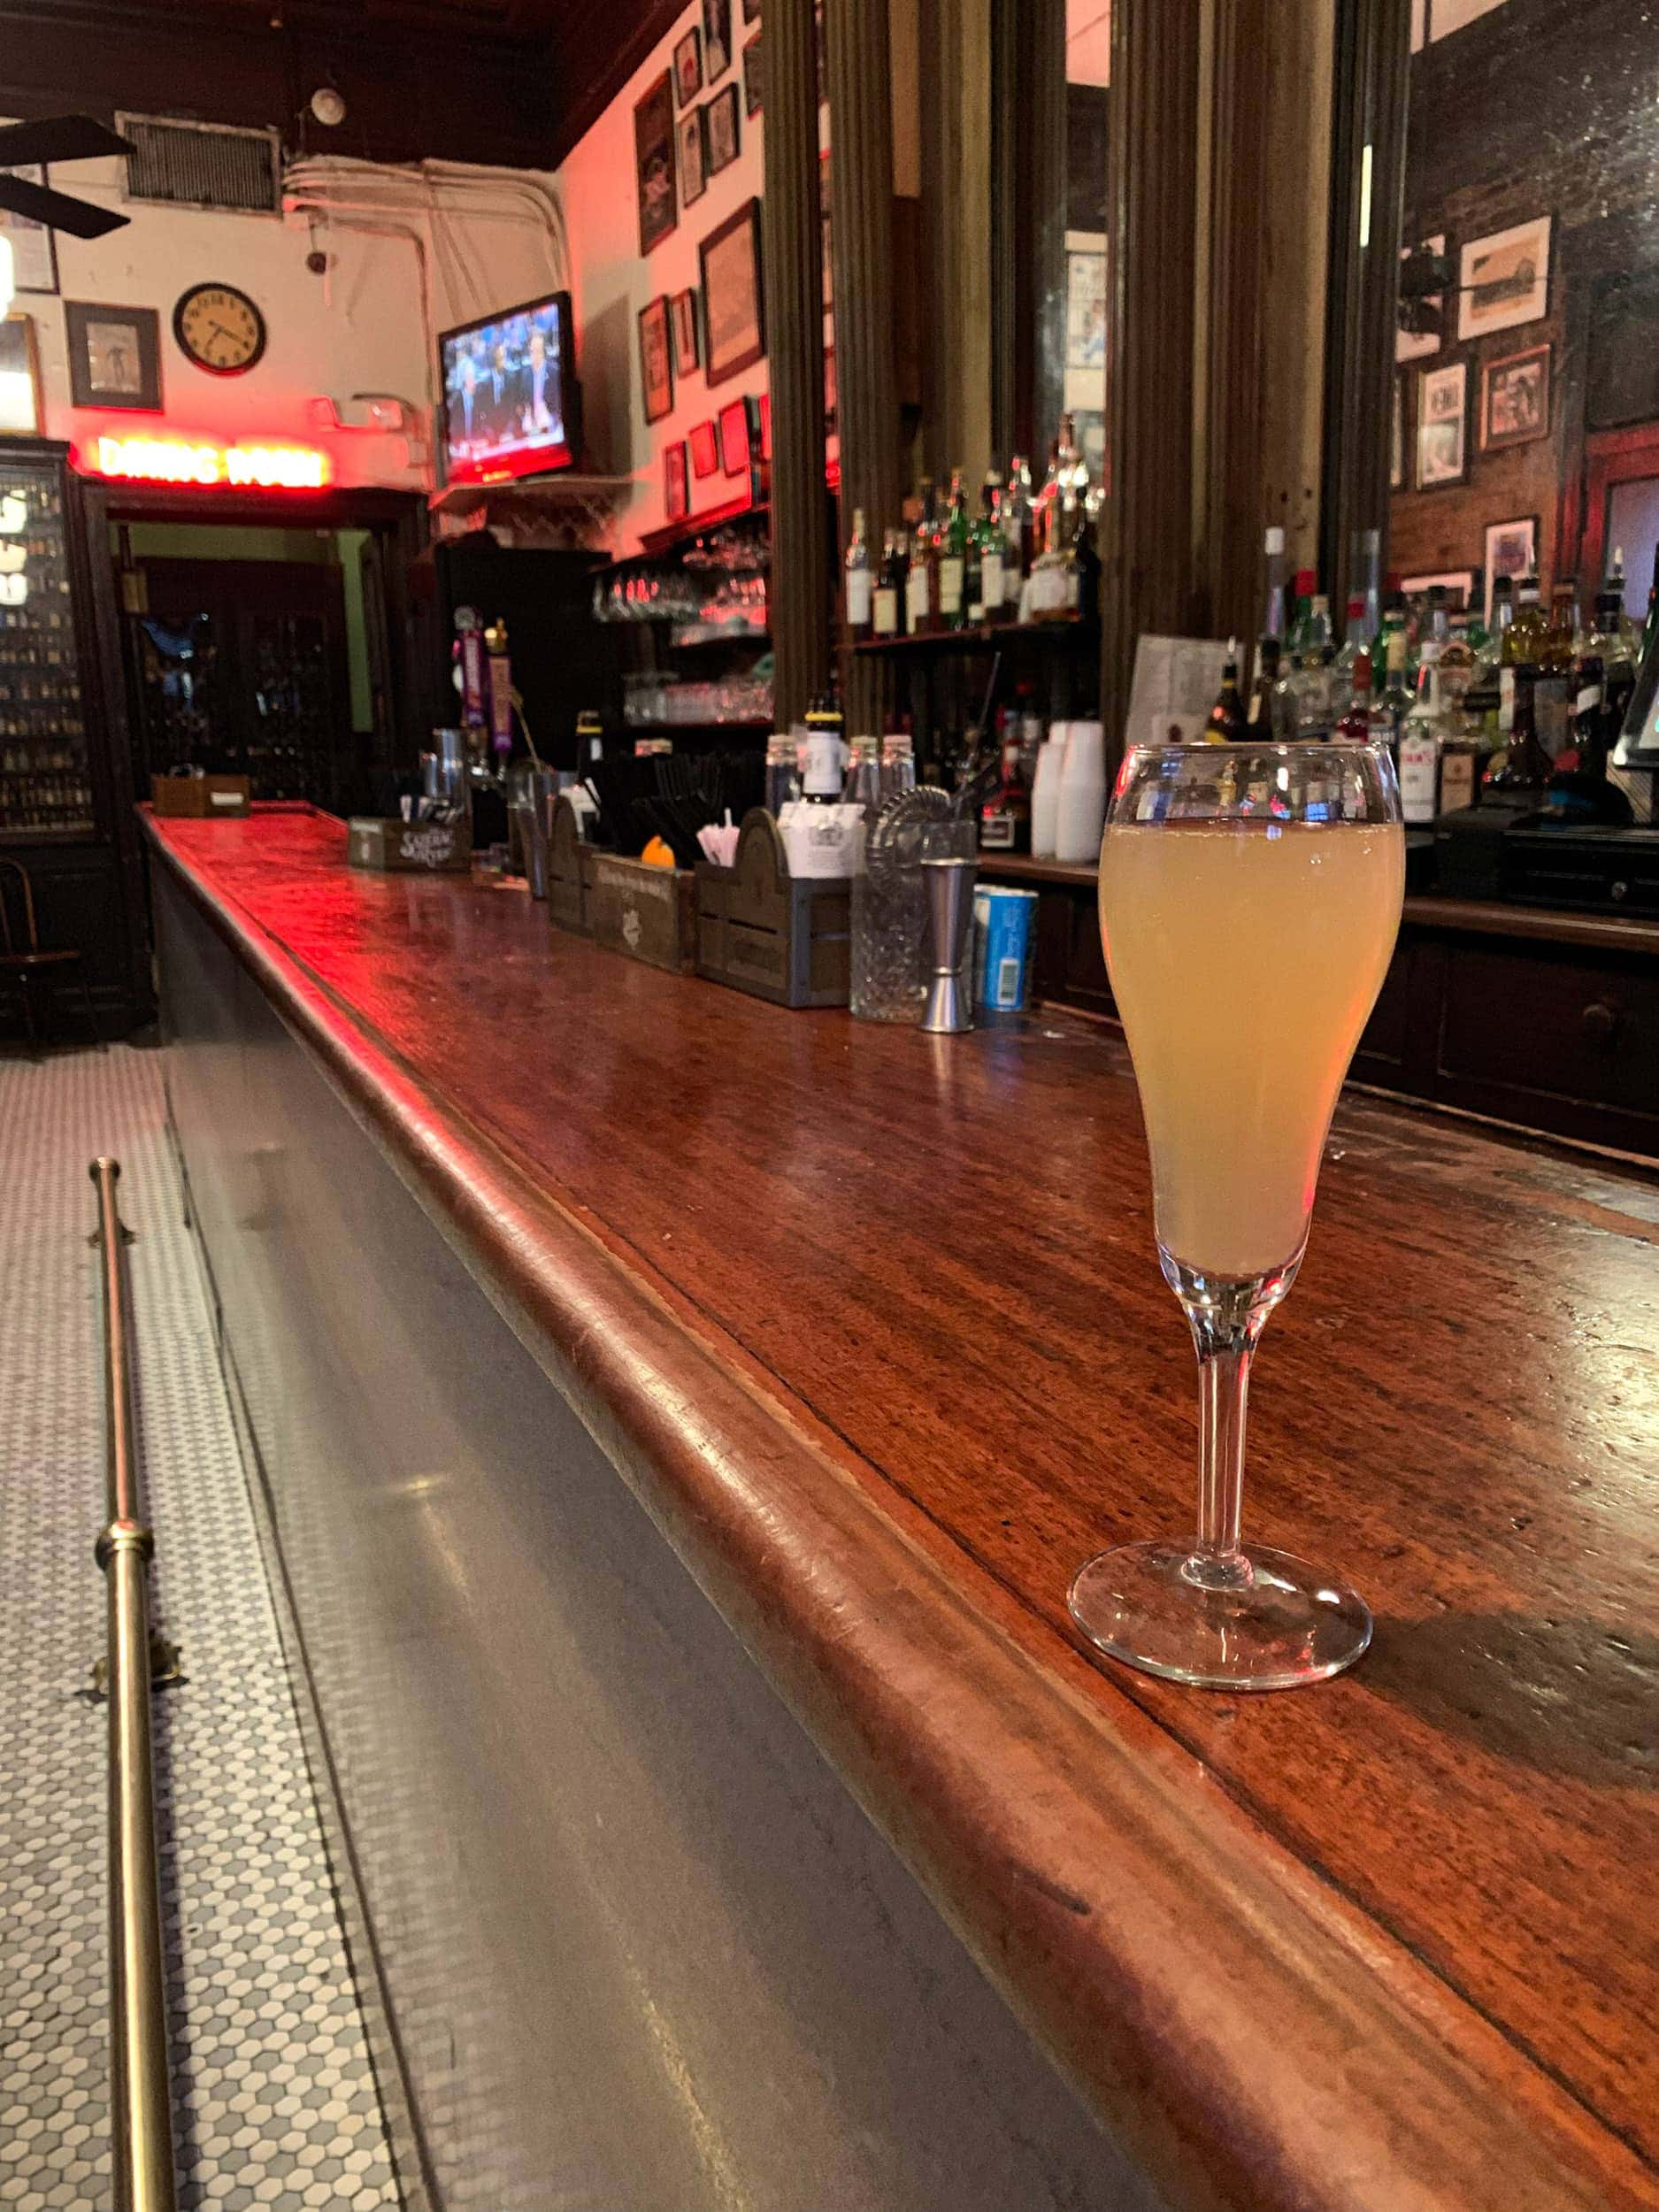 French 75 at Tujague's, the oldest standing bar in the United States